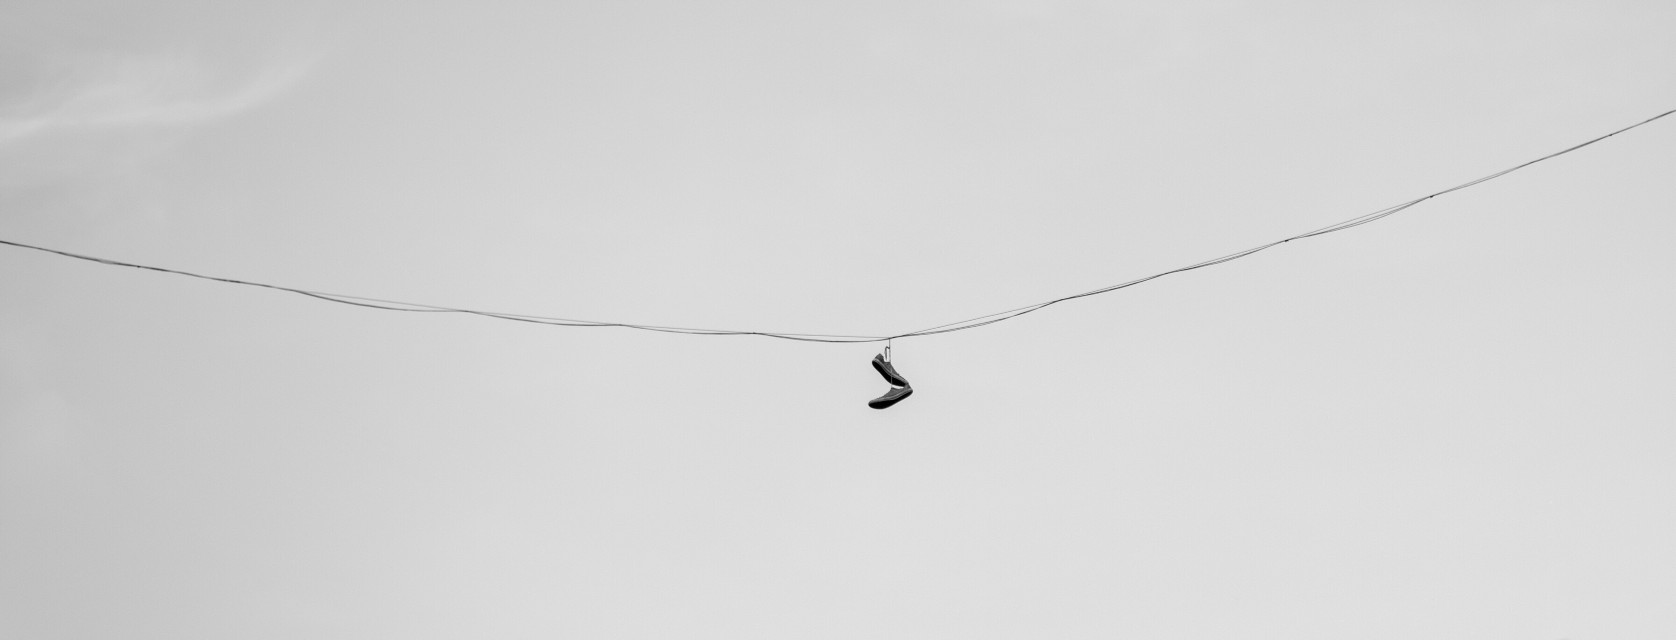 Shoes on the wire #shoes #sky #wire #black&white